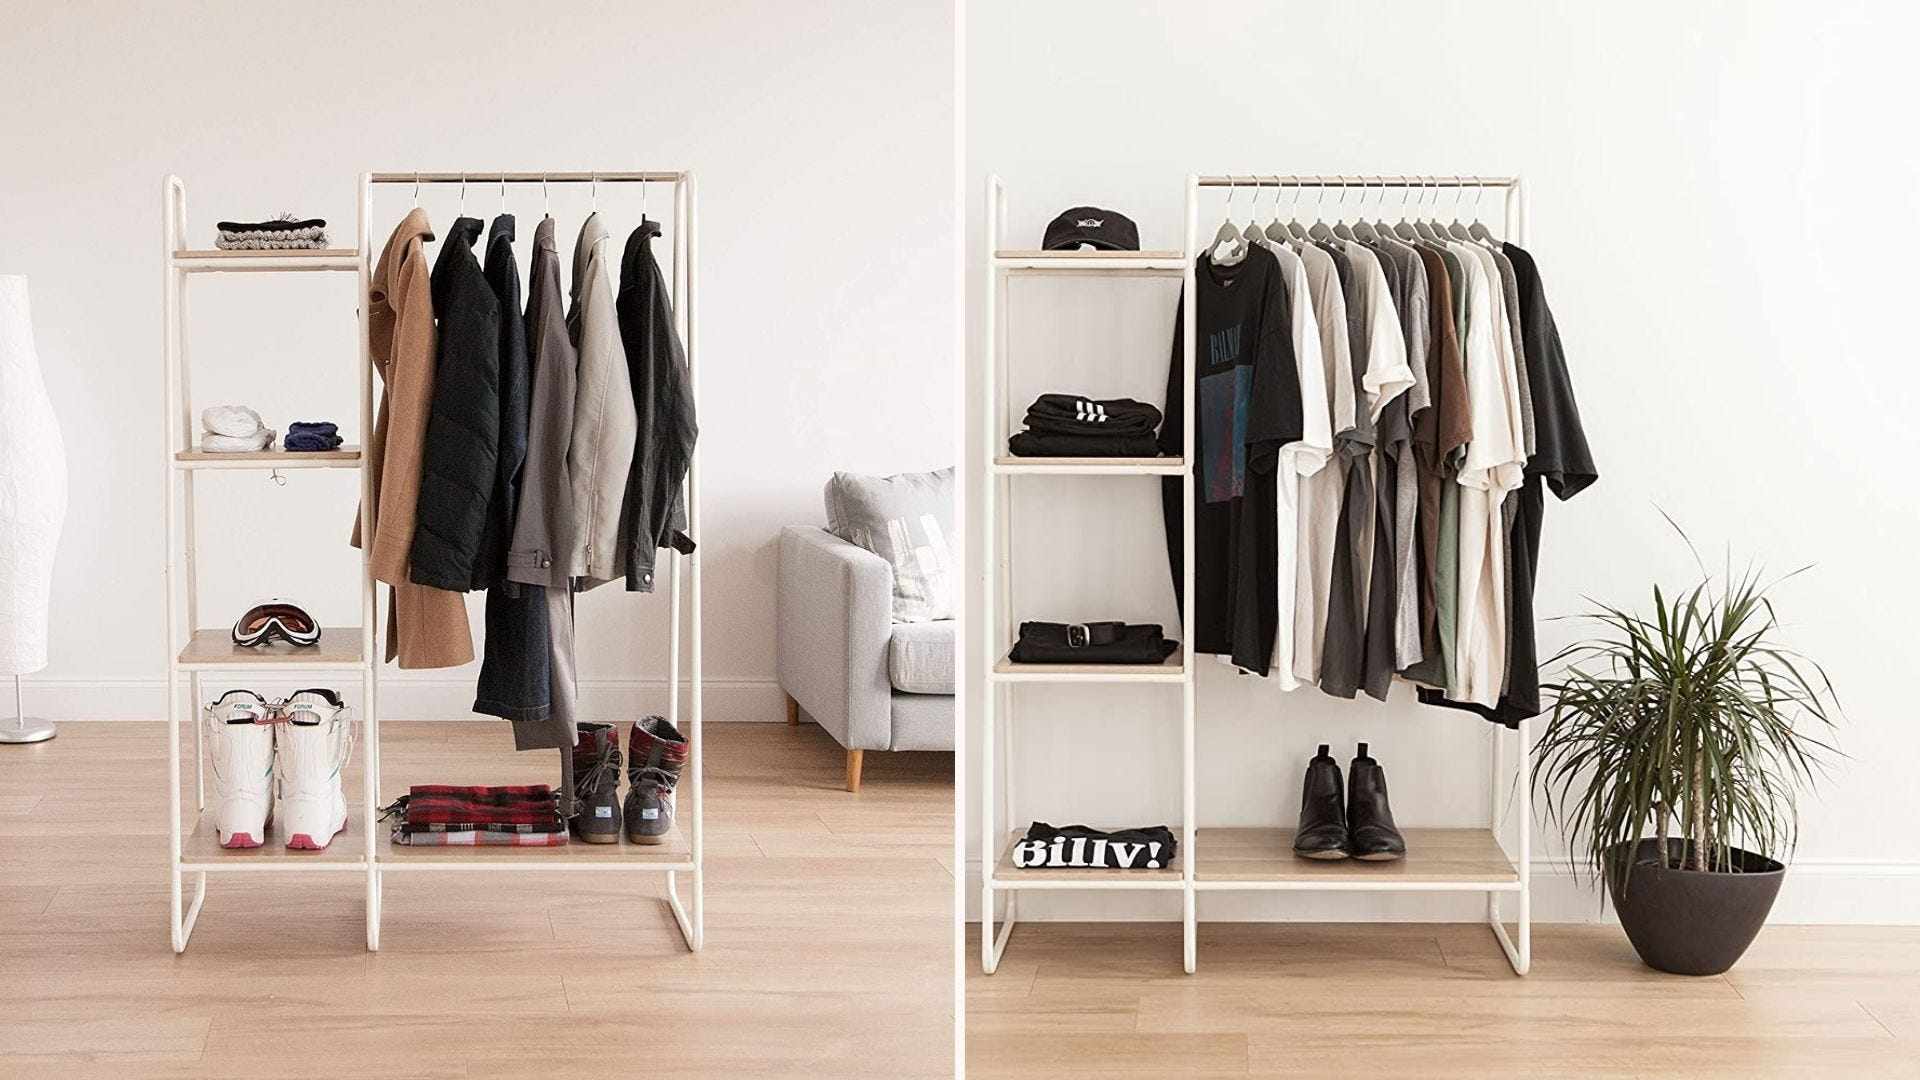 White metal clothing racks displayed in different rooms.